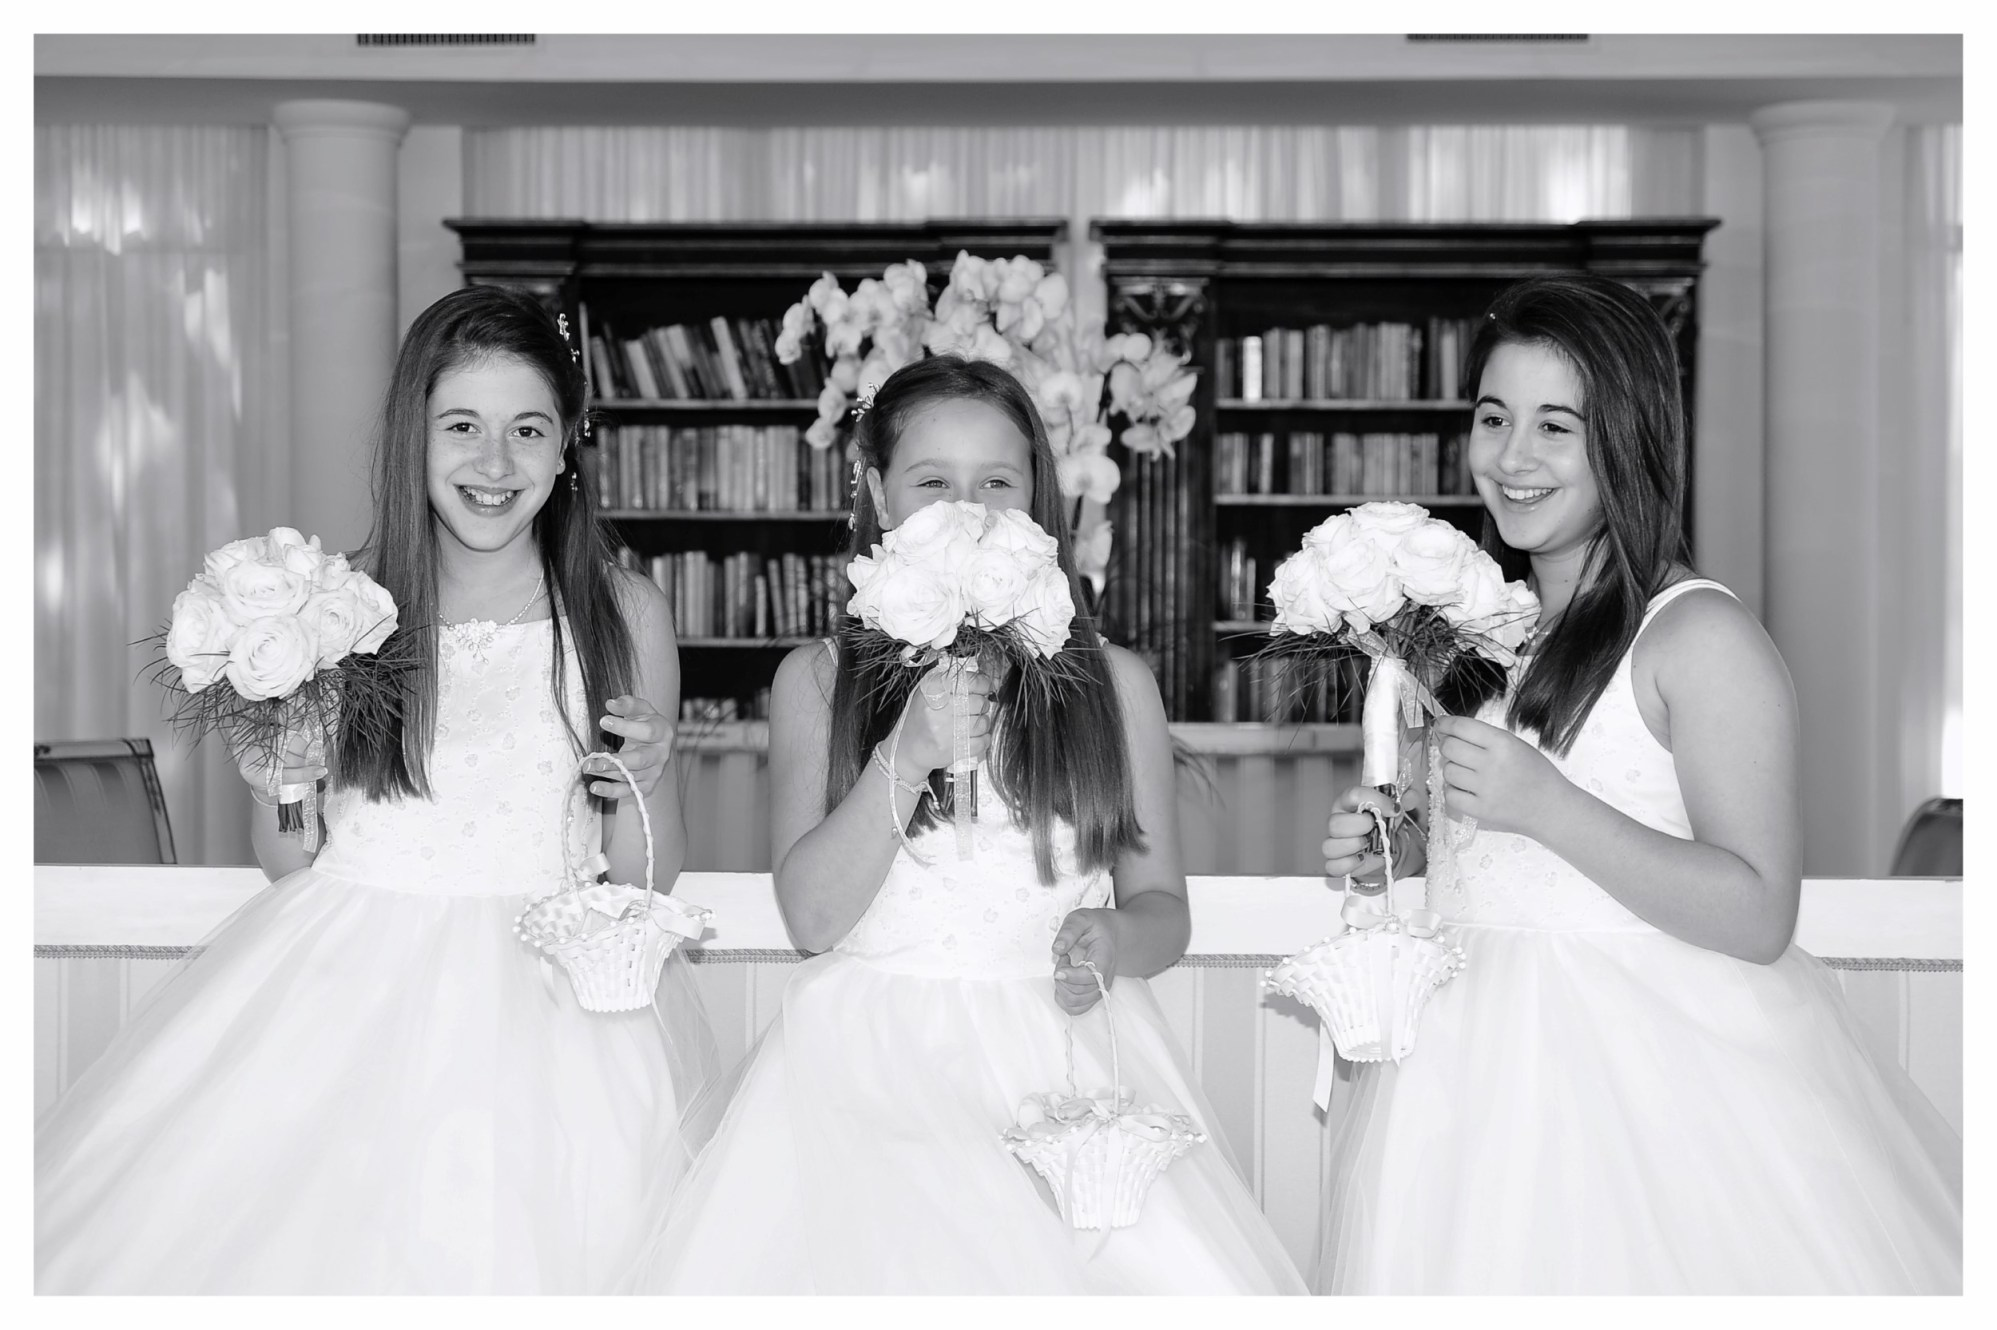 TEENAGE WEDDING BRIDESMAID'S 005040 (Custom)